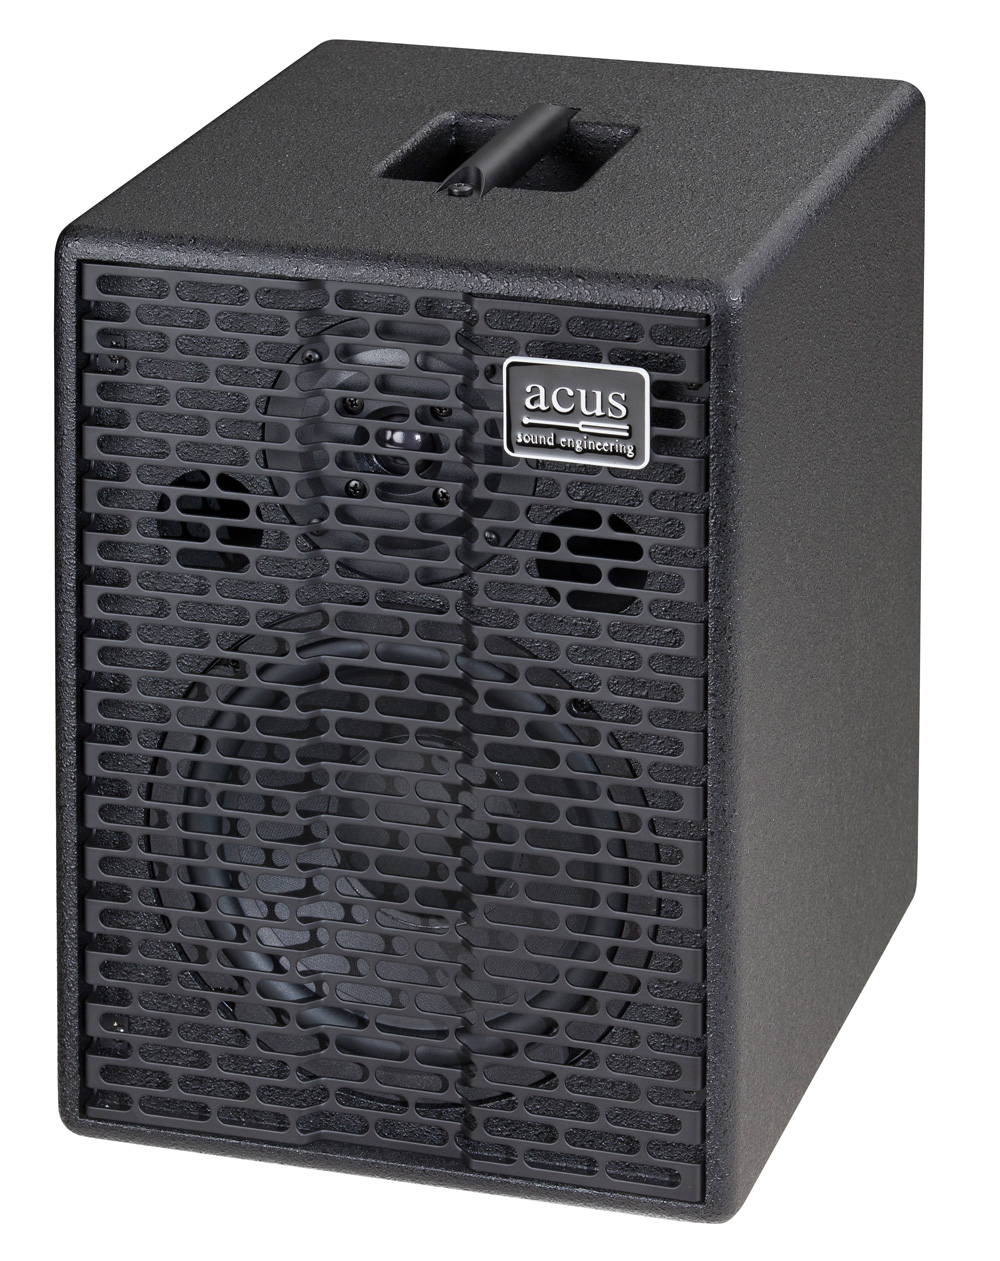 Acus One for All Acoustic Amplifier (black)